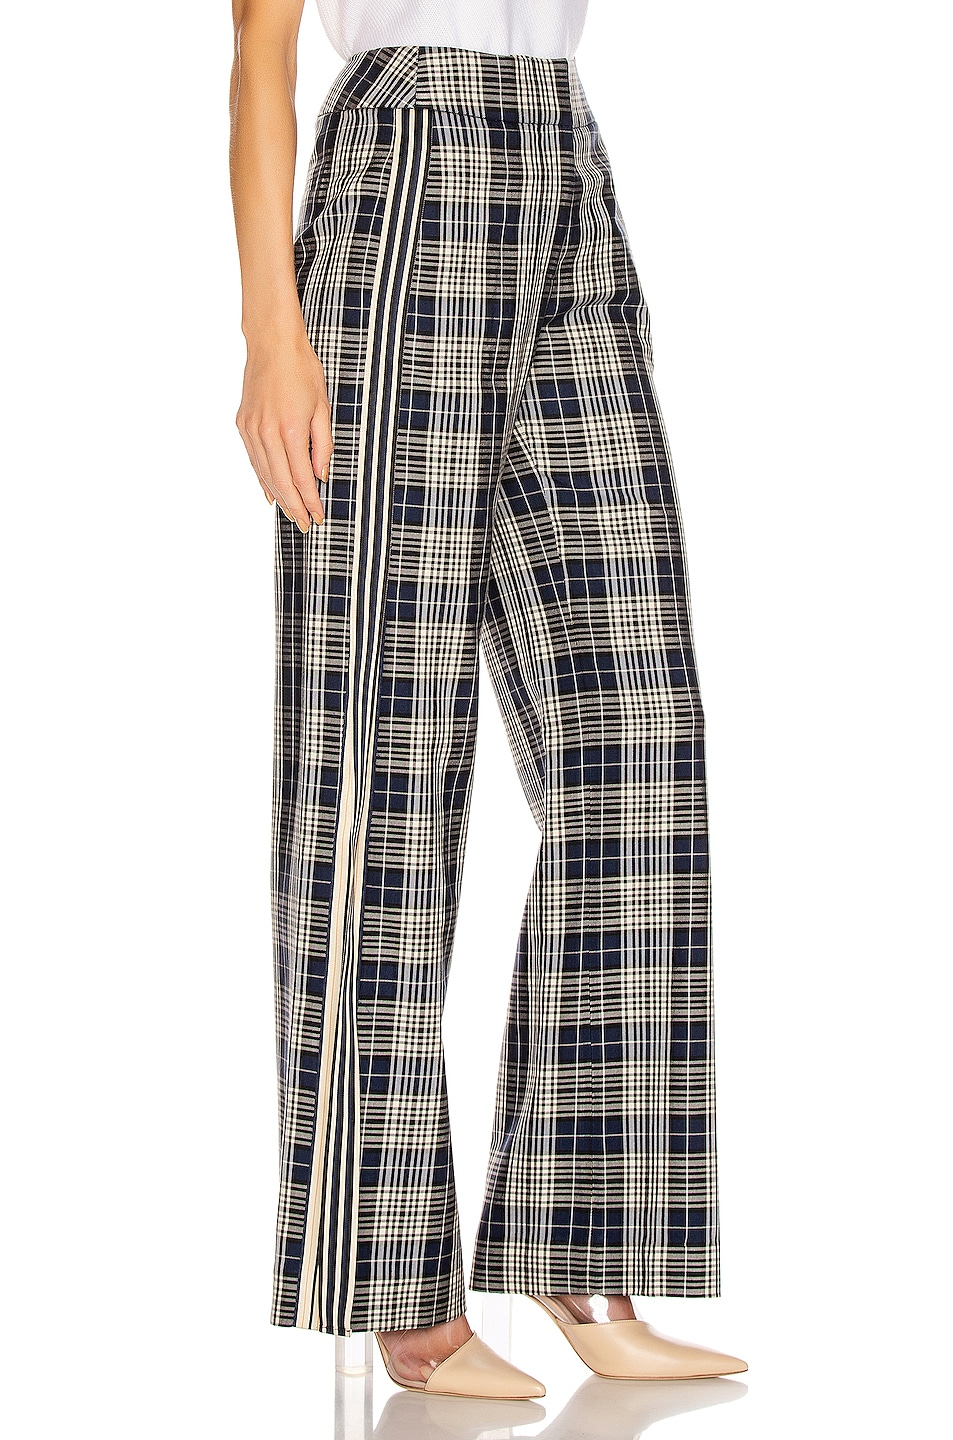 Image 2 of Monse Racing Stripe Vintage Pant in Navy Plaid